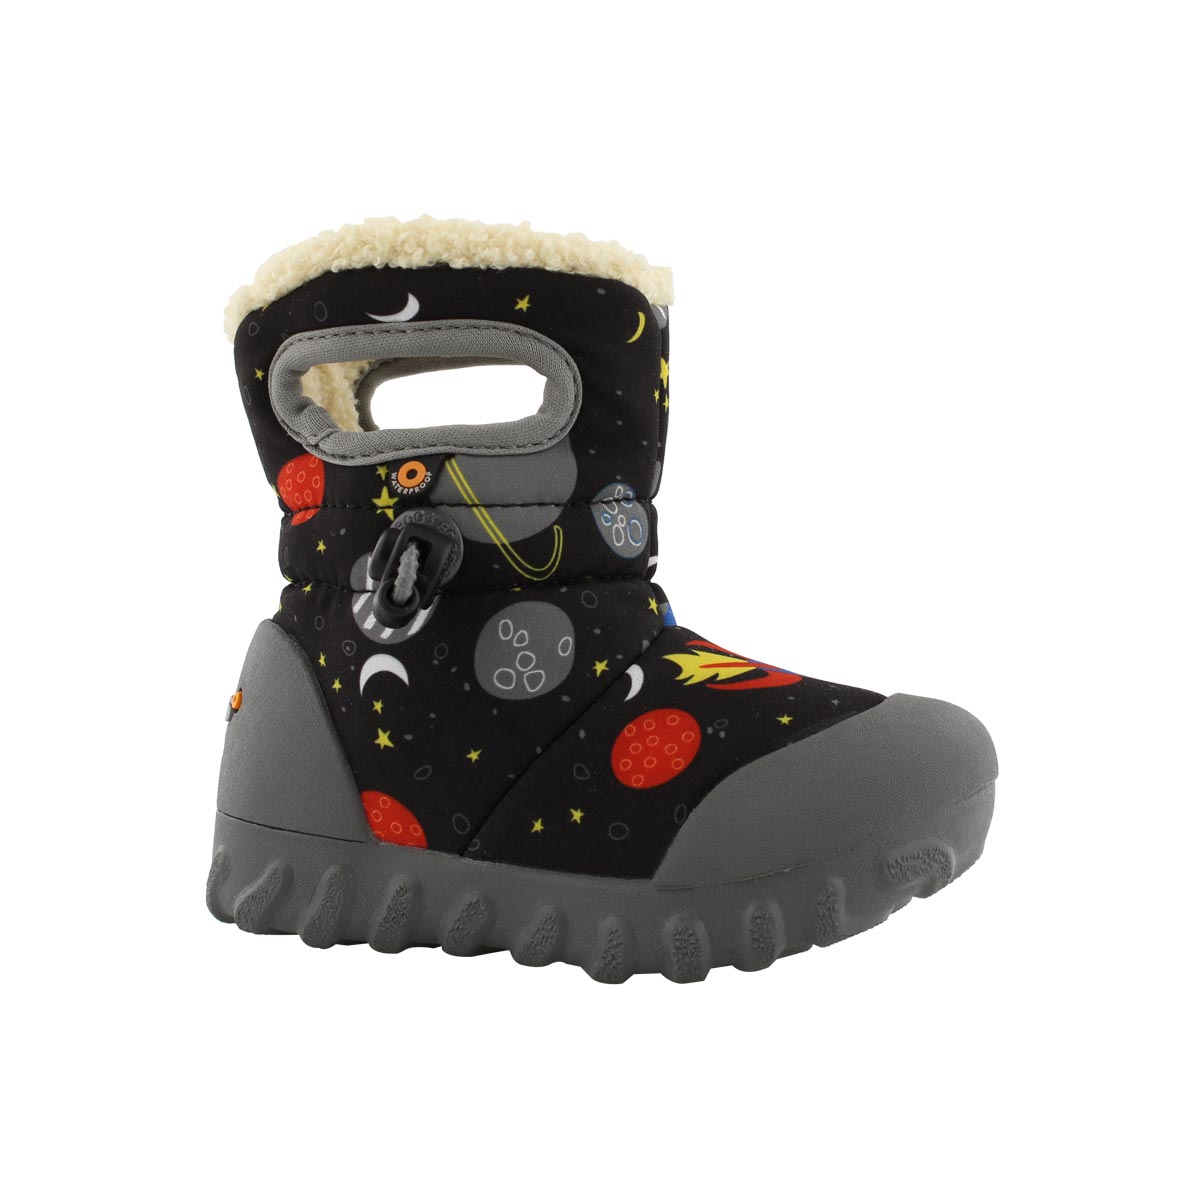 7059abbdc1 Bogs Baby B-moc Waterproof Insulated Kids/toddler Winter Boot Space 7 M US